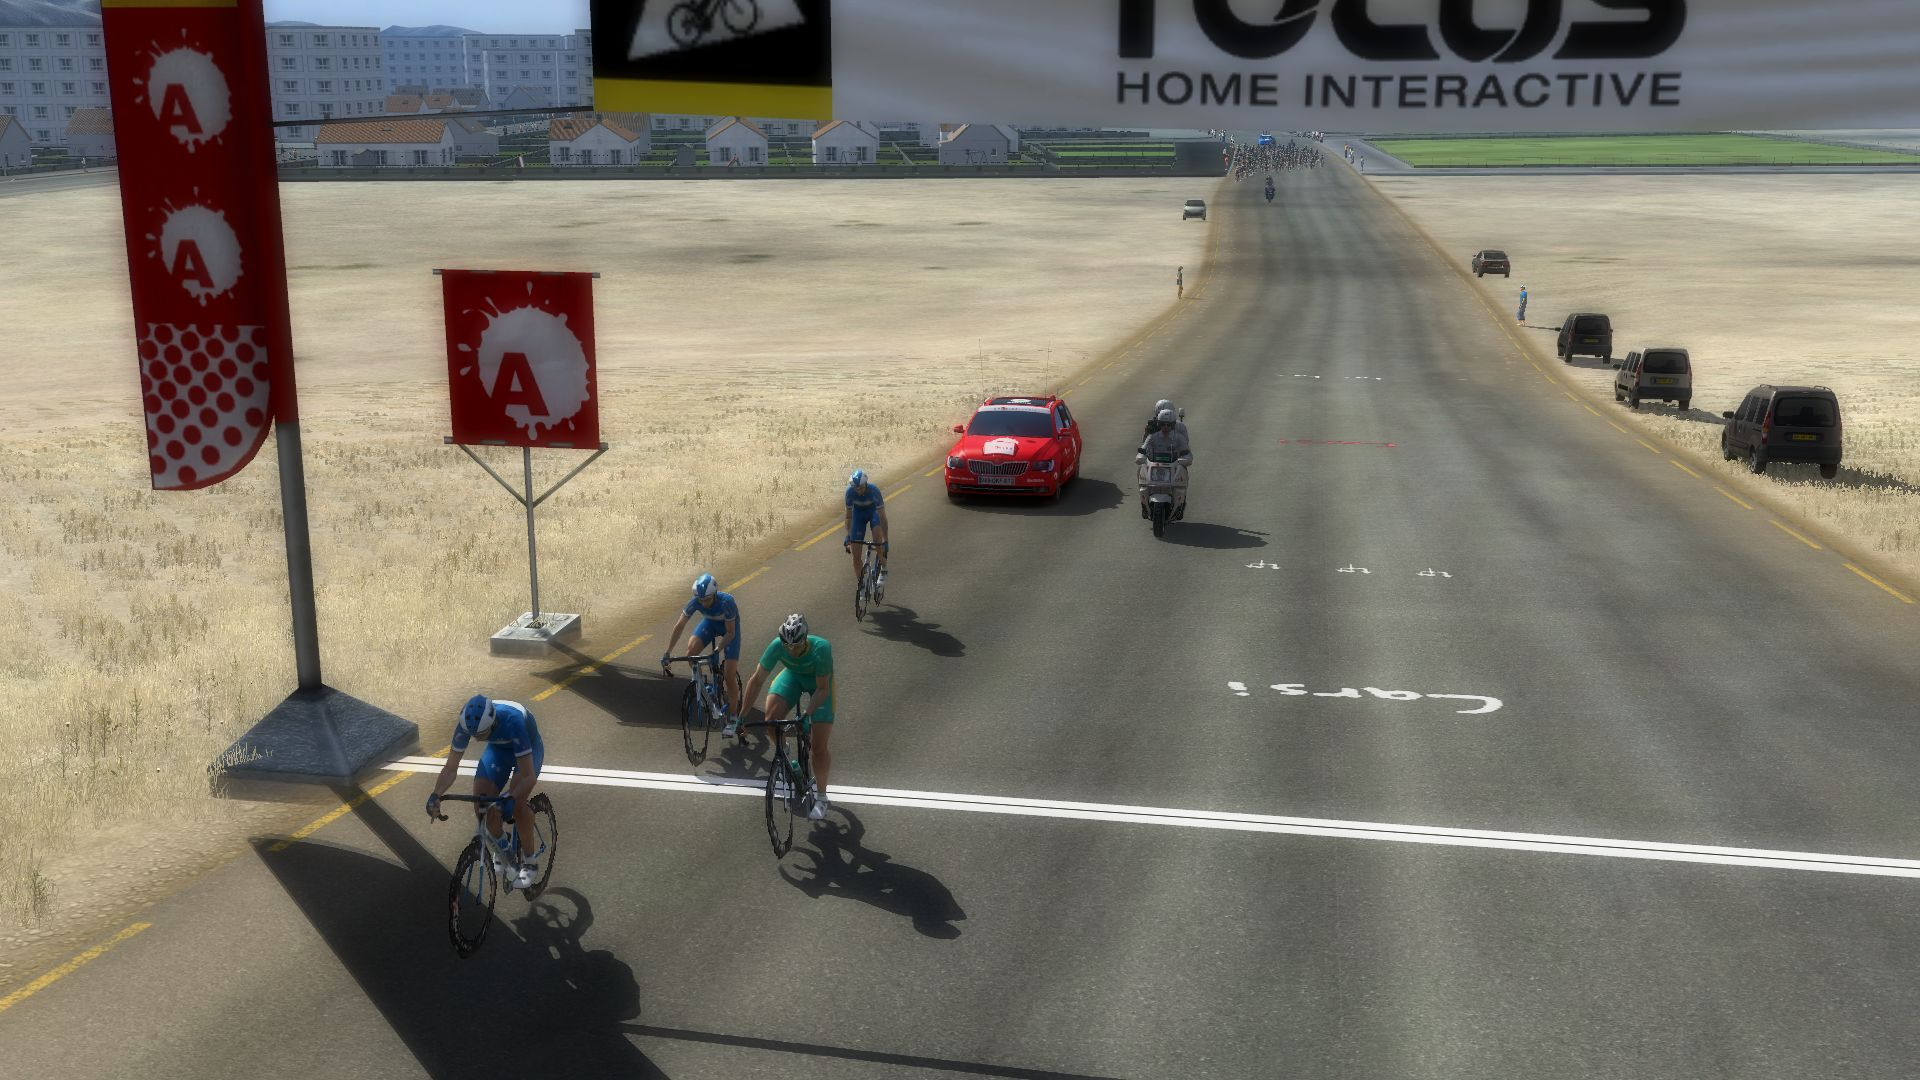 pcmdaily.com/images/mg/2019/Races/C2HC/Eritrea/TOES1%208.jpg